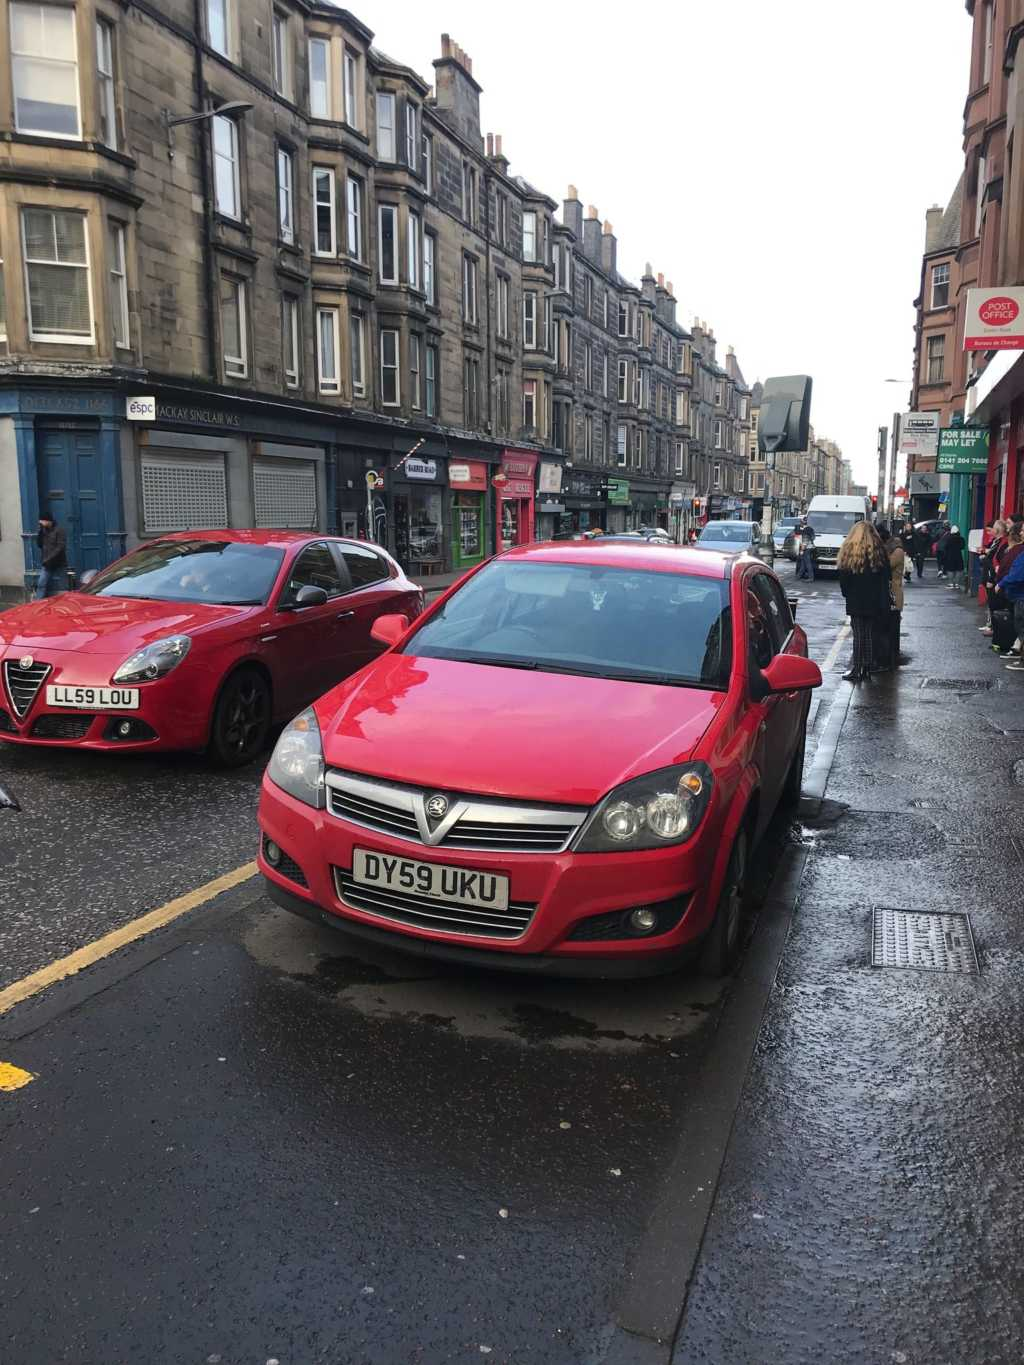 DY59 UKU displaying Inconsiderate Parking